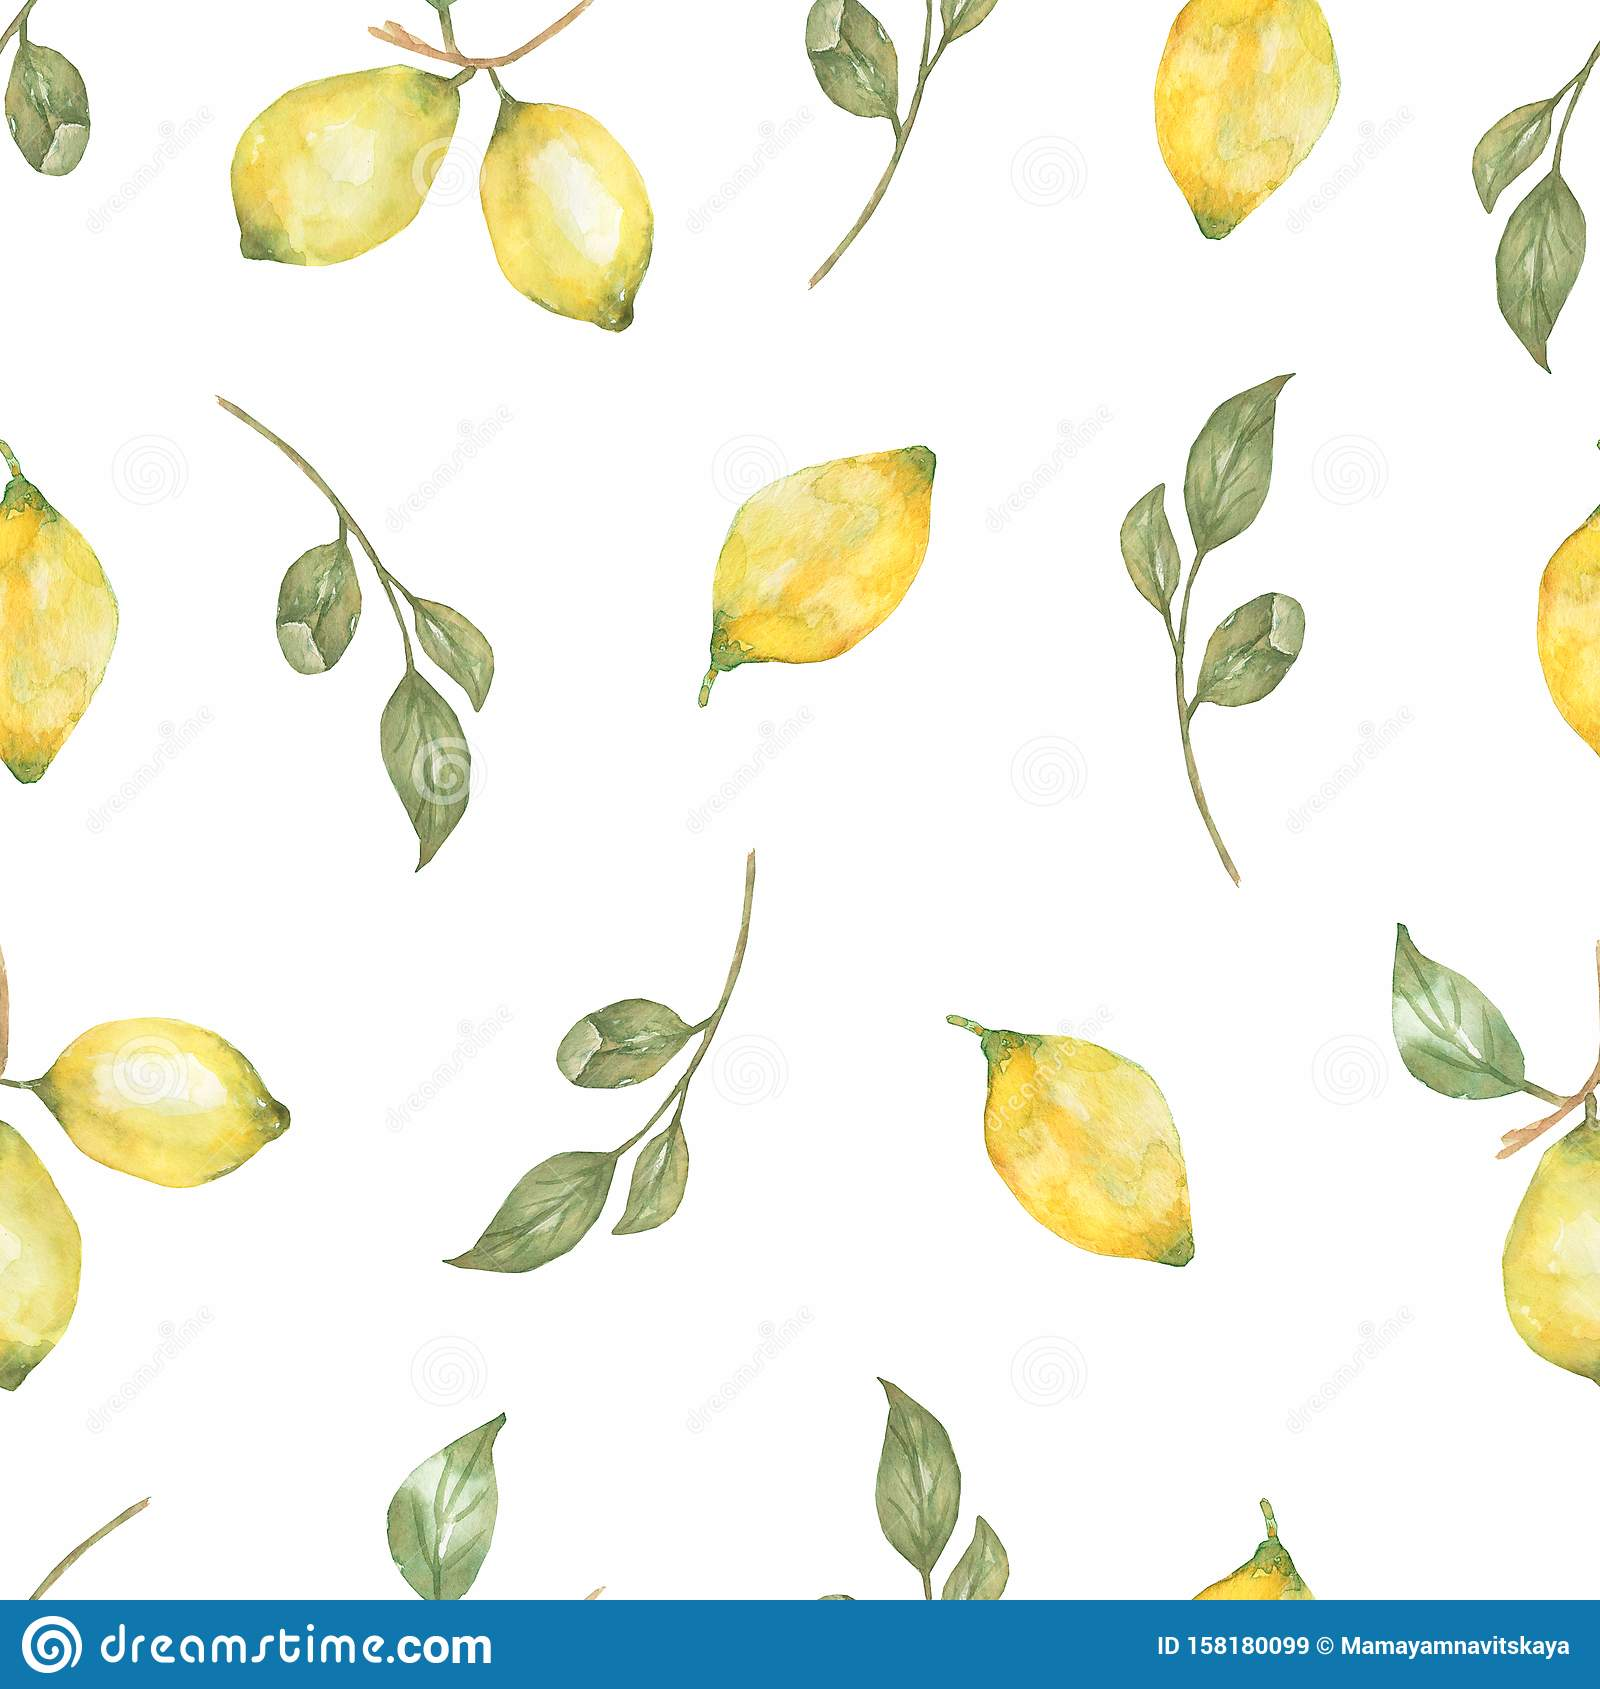 Watercolor hand drawn Seamless pattern. Yellow citrus fruitfruit fruit. Sicily Lemon, leaves and flowers. Tropical illustration